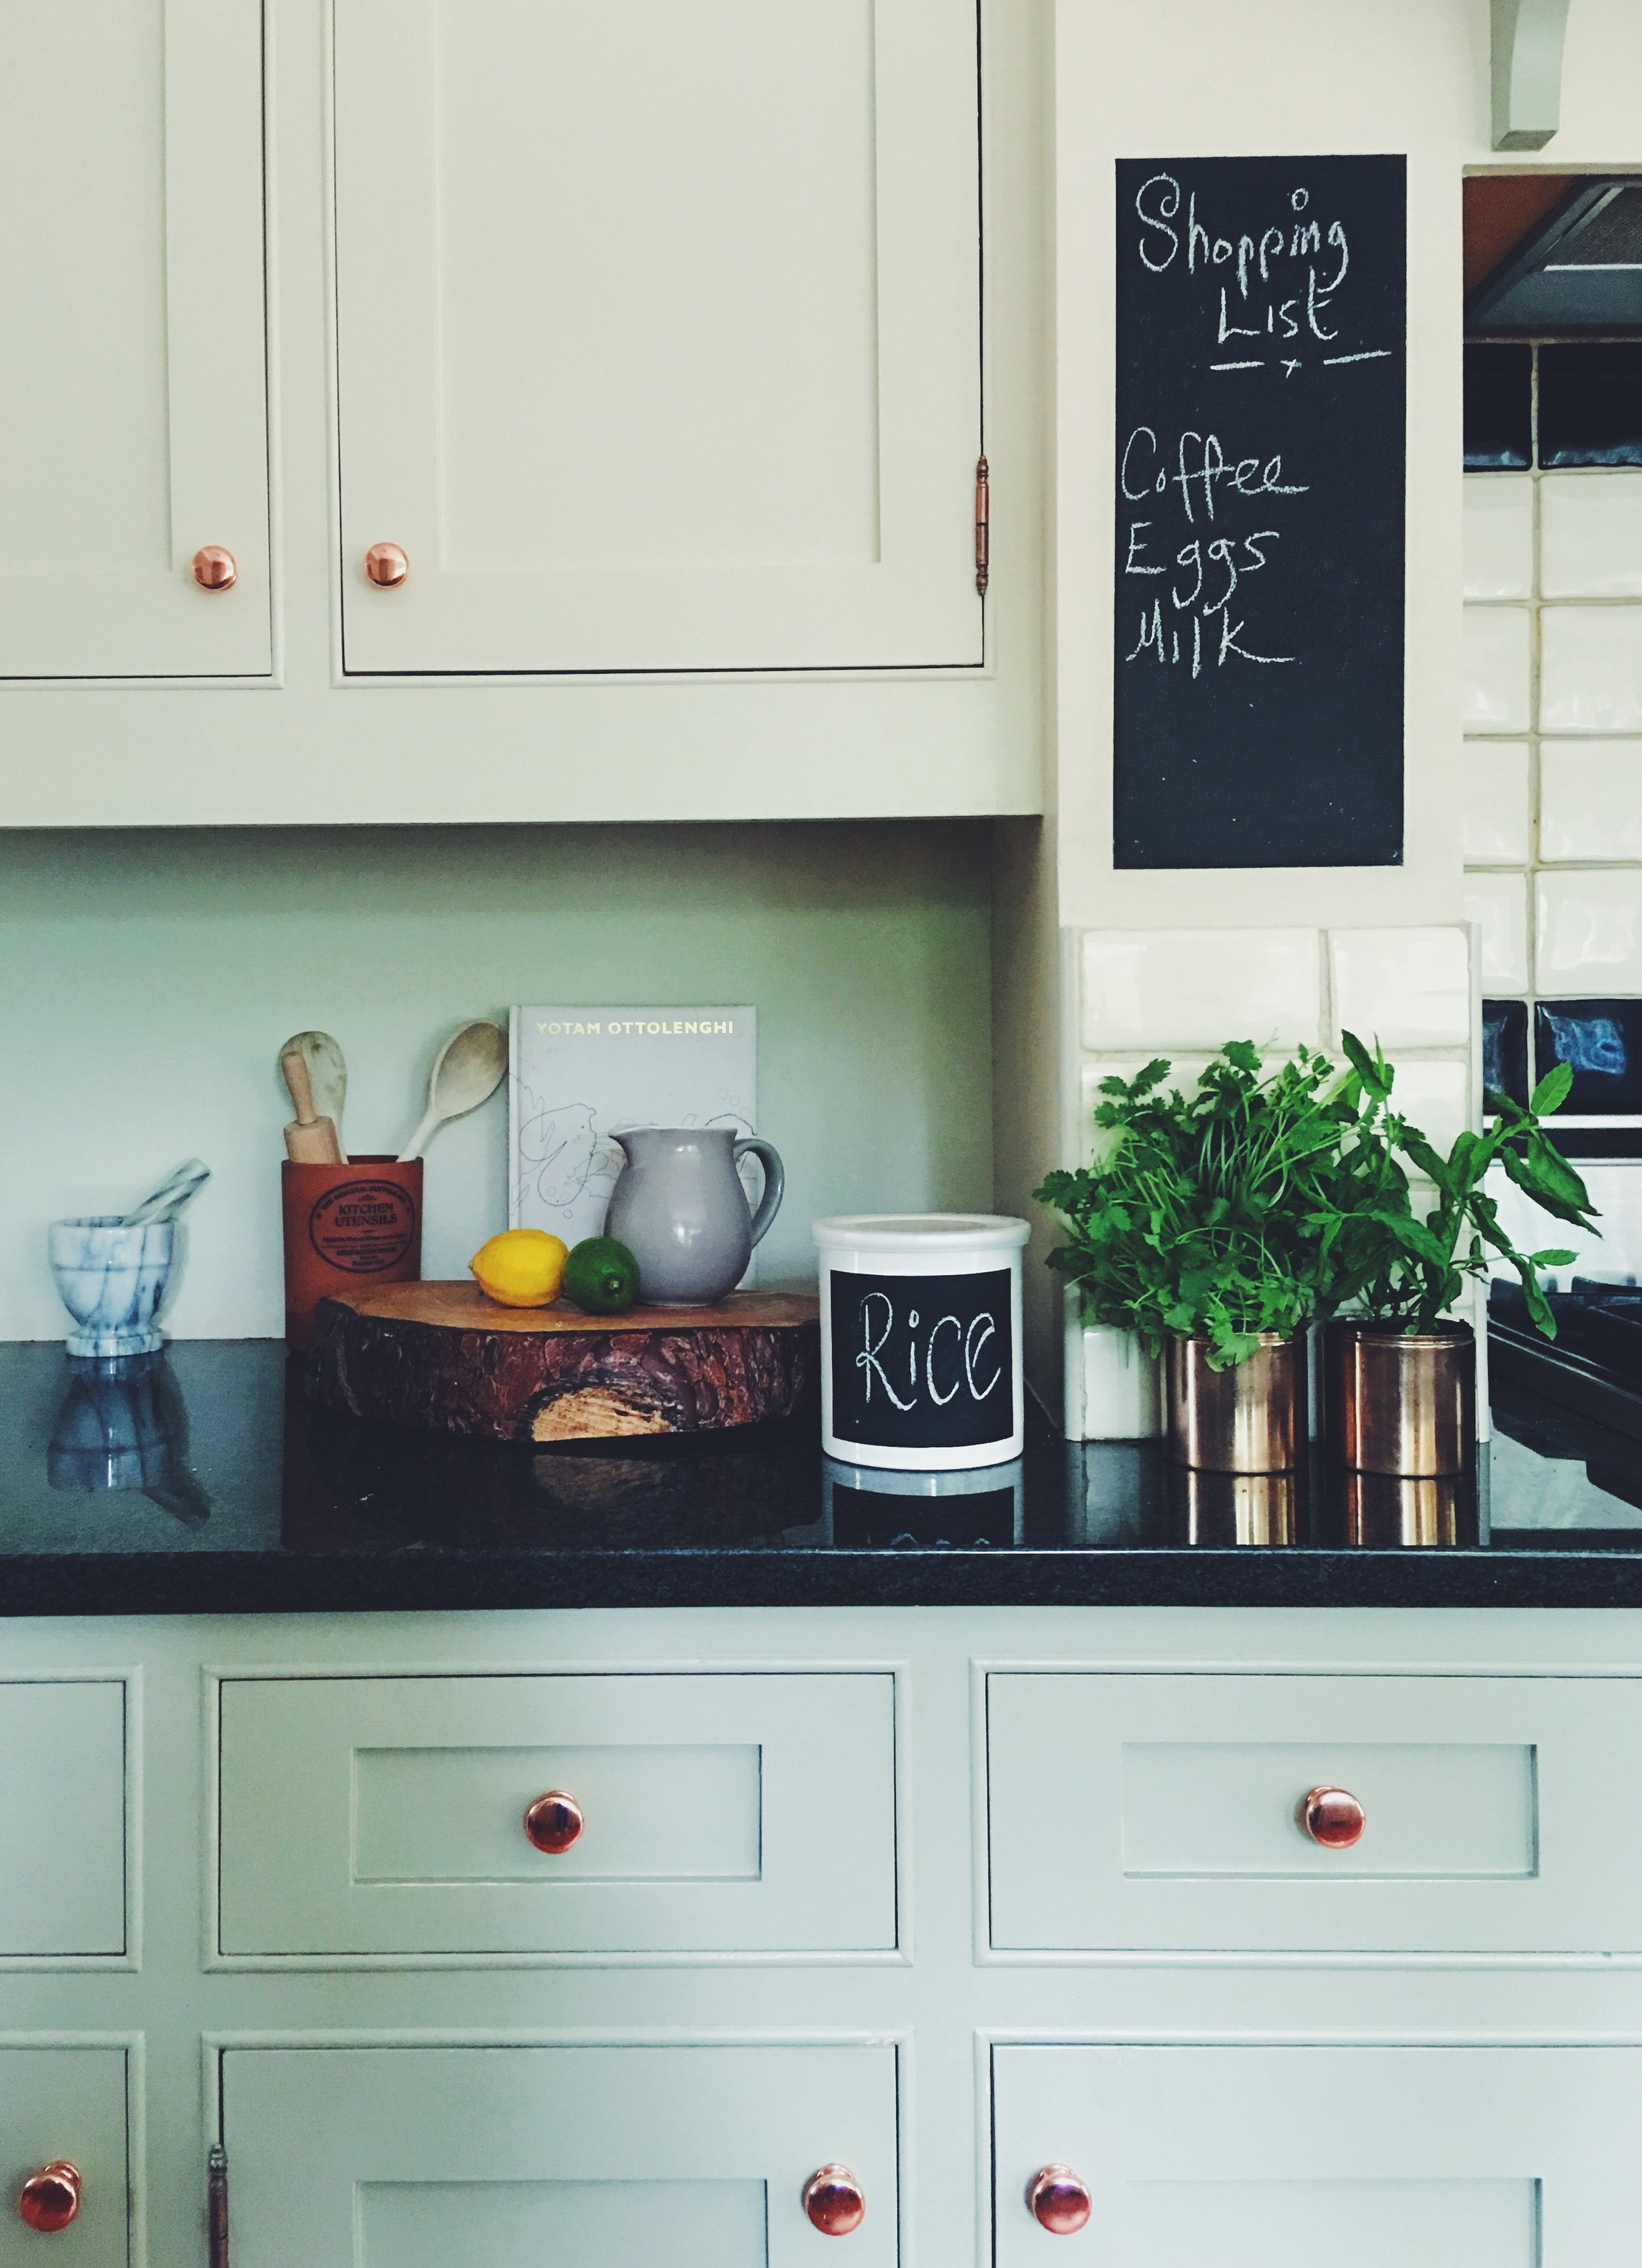 I've used inexpensive chalkboard paint a lot in my kitchen. I've used it to label food pots, and created a shopping list area on an otherwise unused bit of wall.